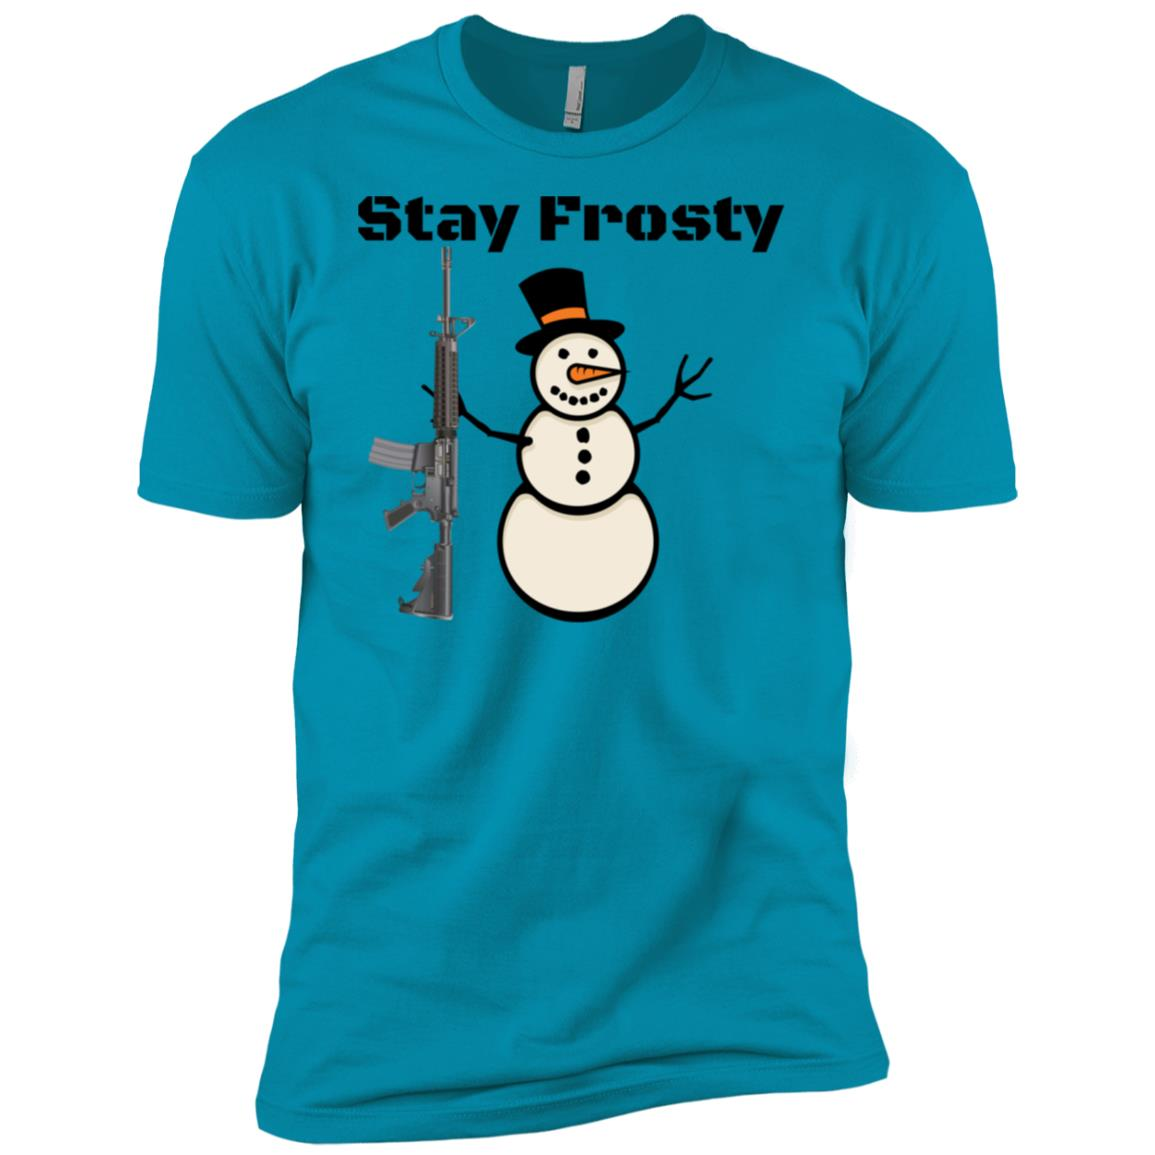 Stay Frosty And Alert Hunting Semi-Automatic Ar-15 Snowman Men Short Sleeve T-Shirt